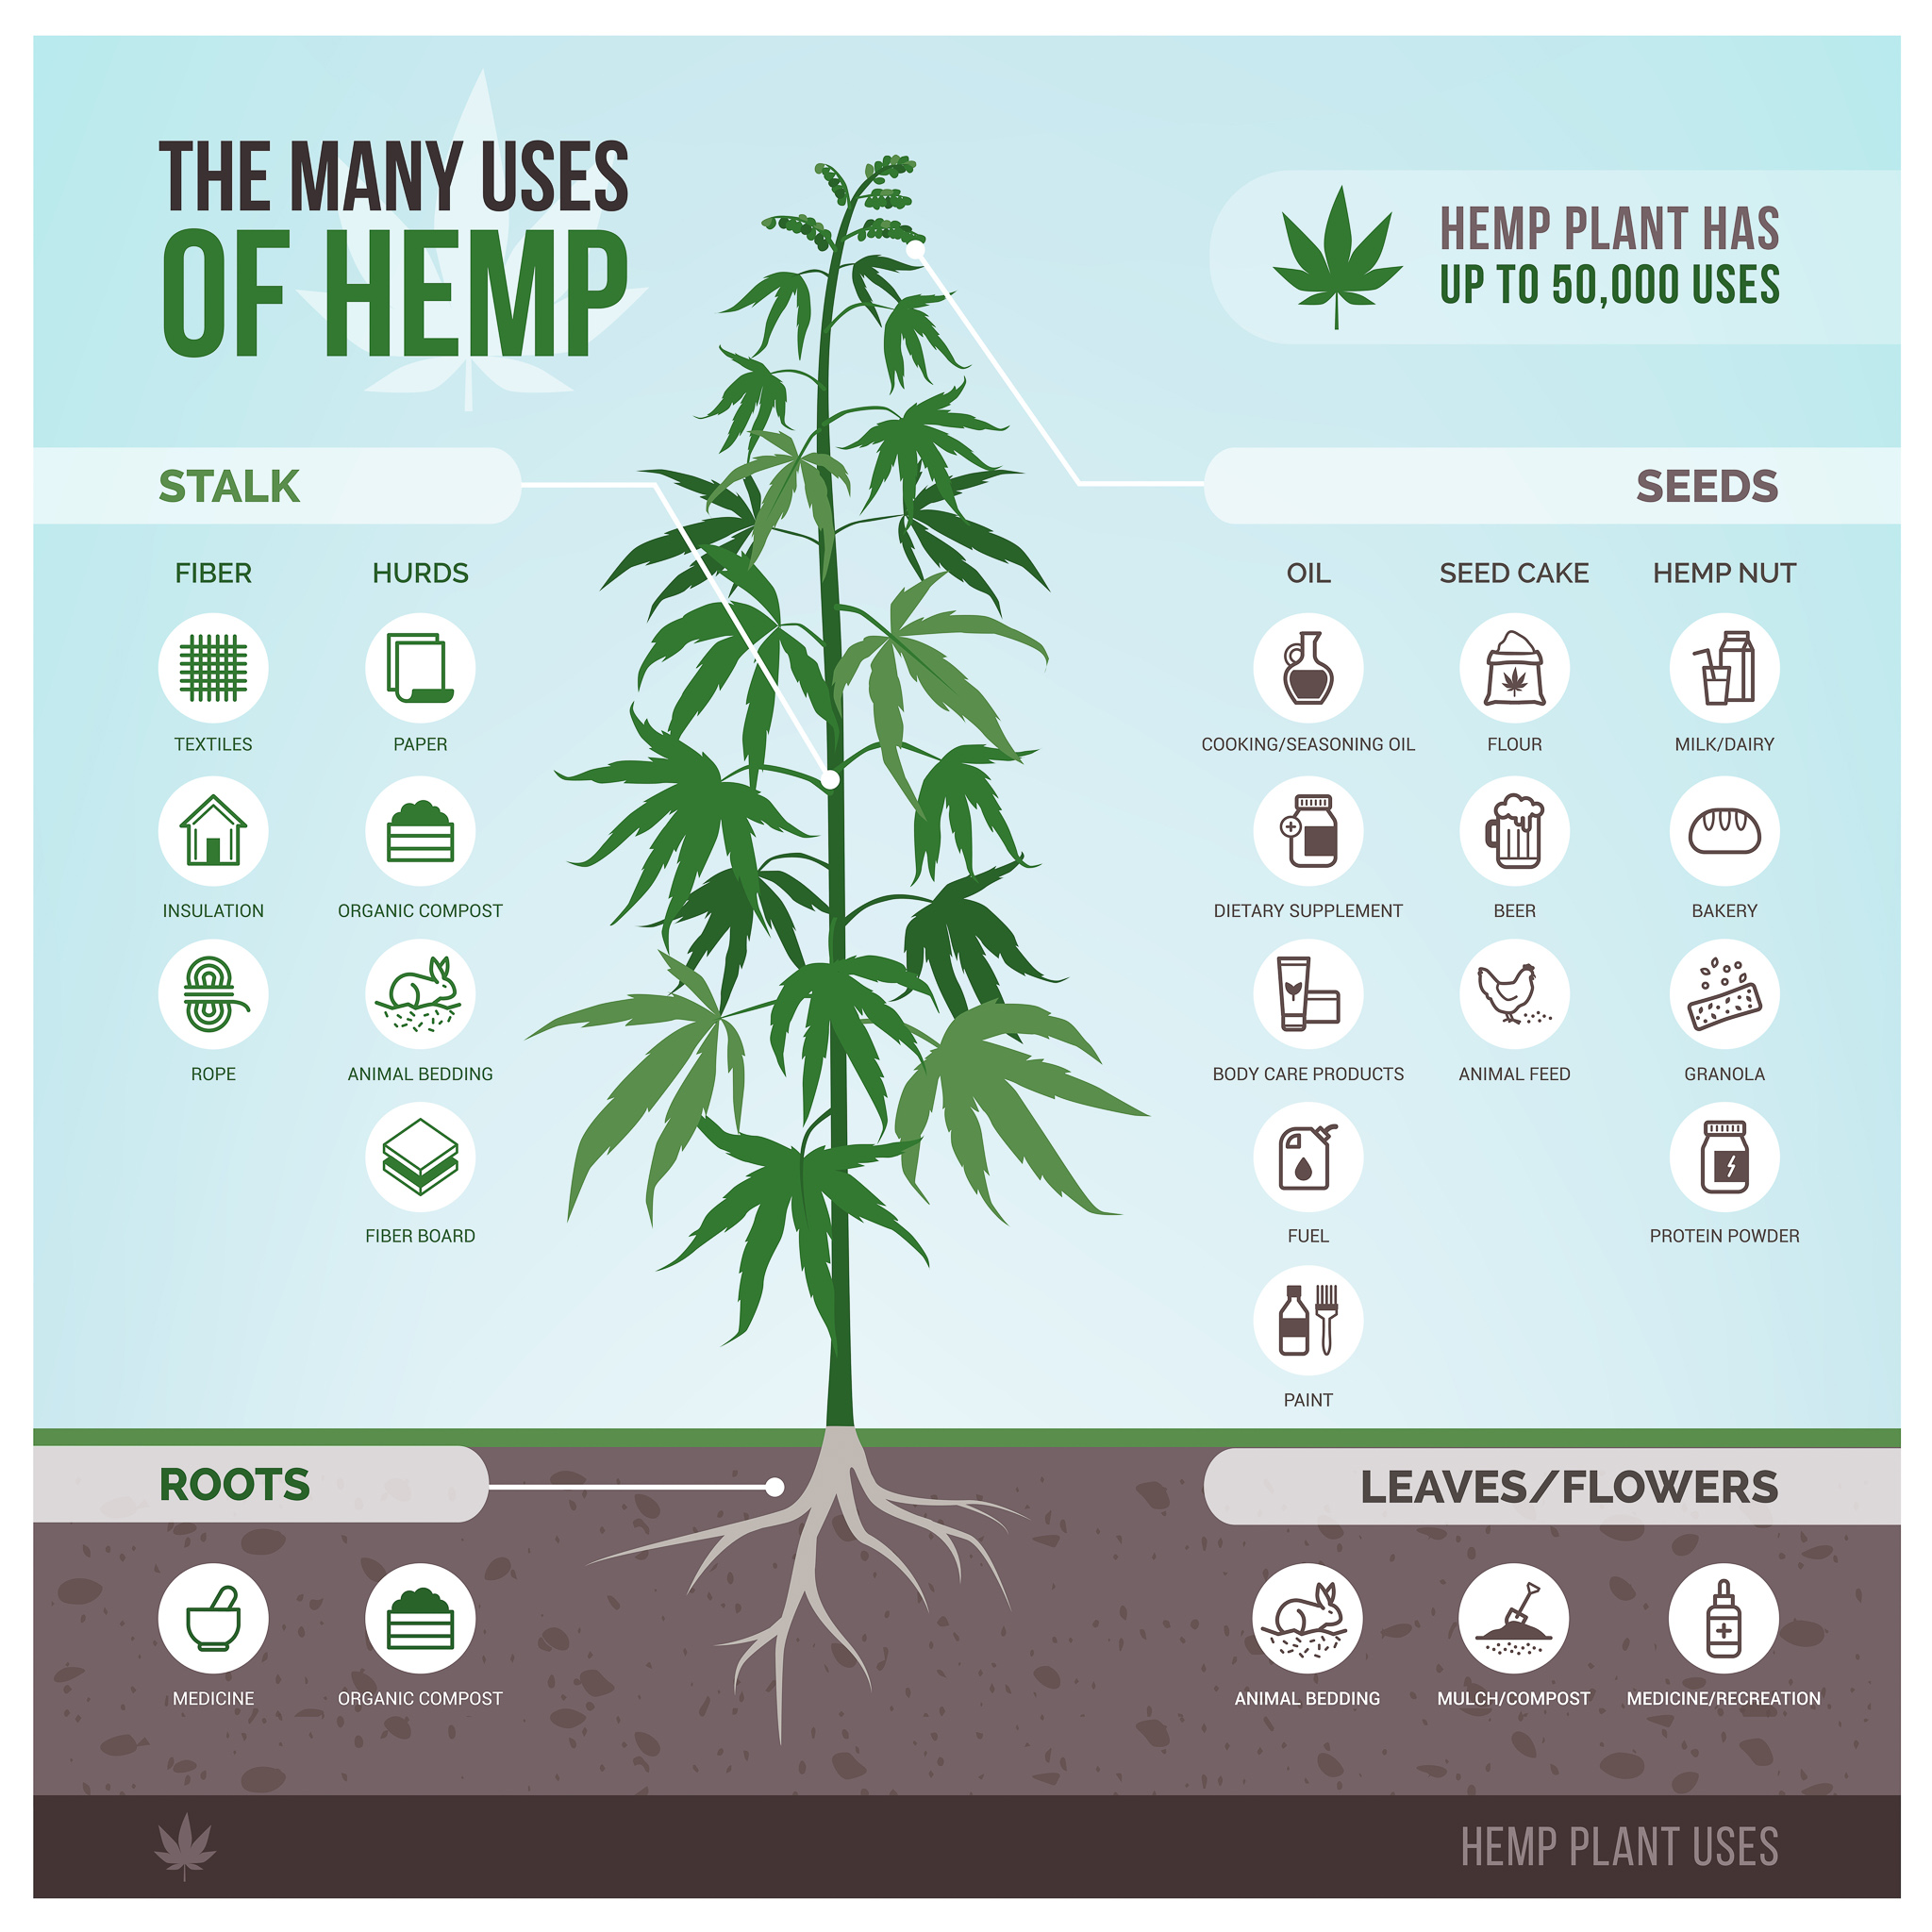 There are so many uses for hemp